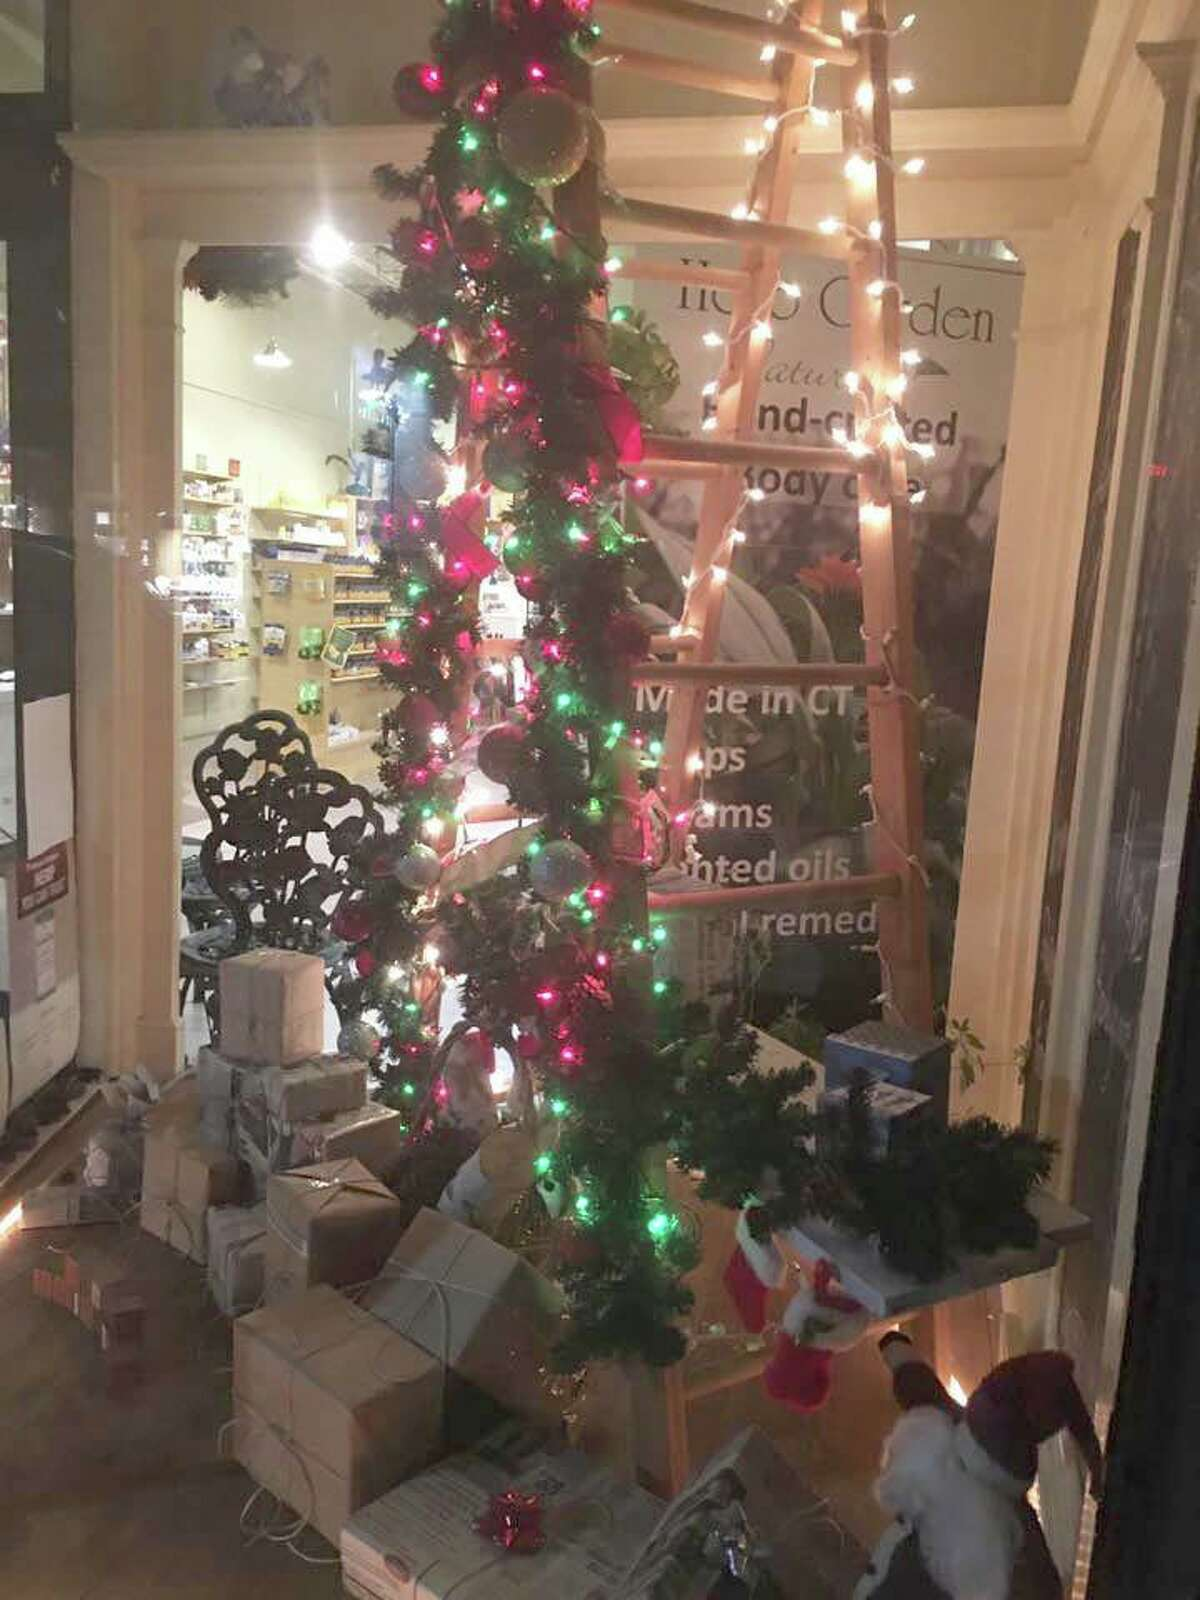 Natural Marketplace was awarded first place for its holiday window decorations.